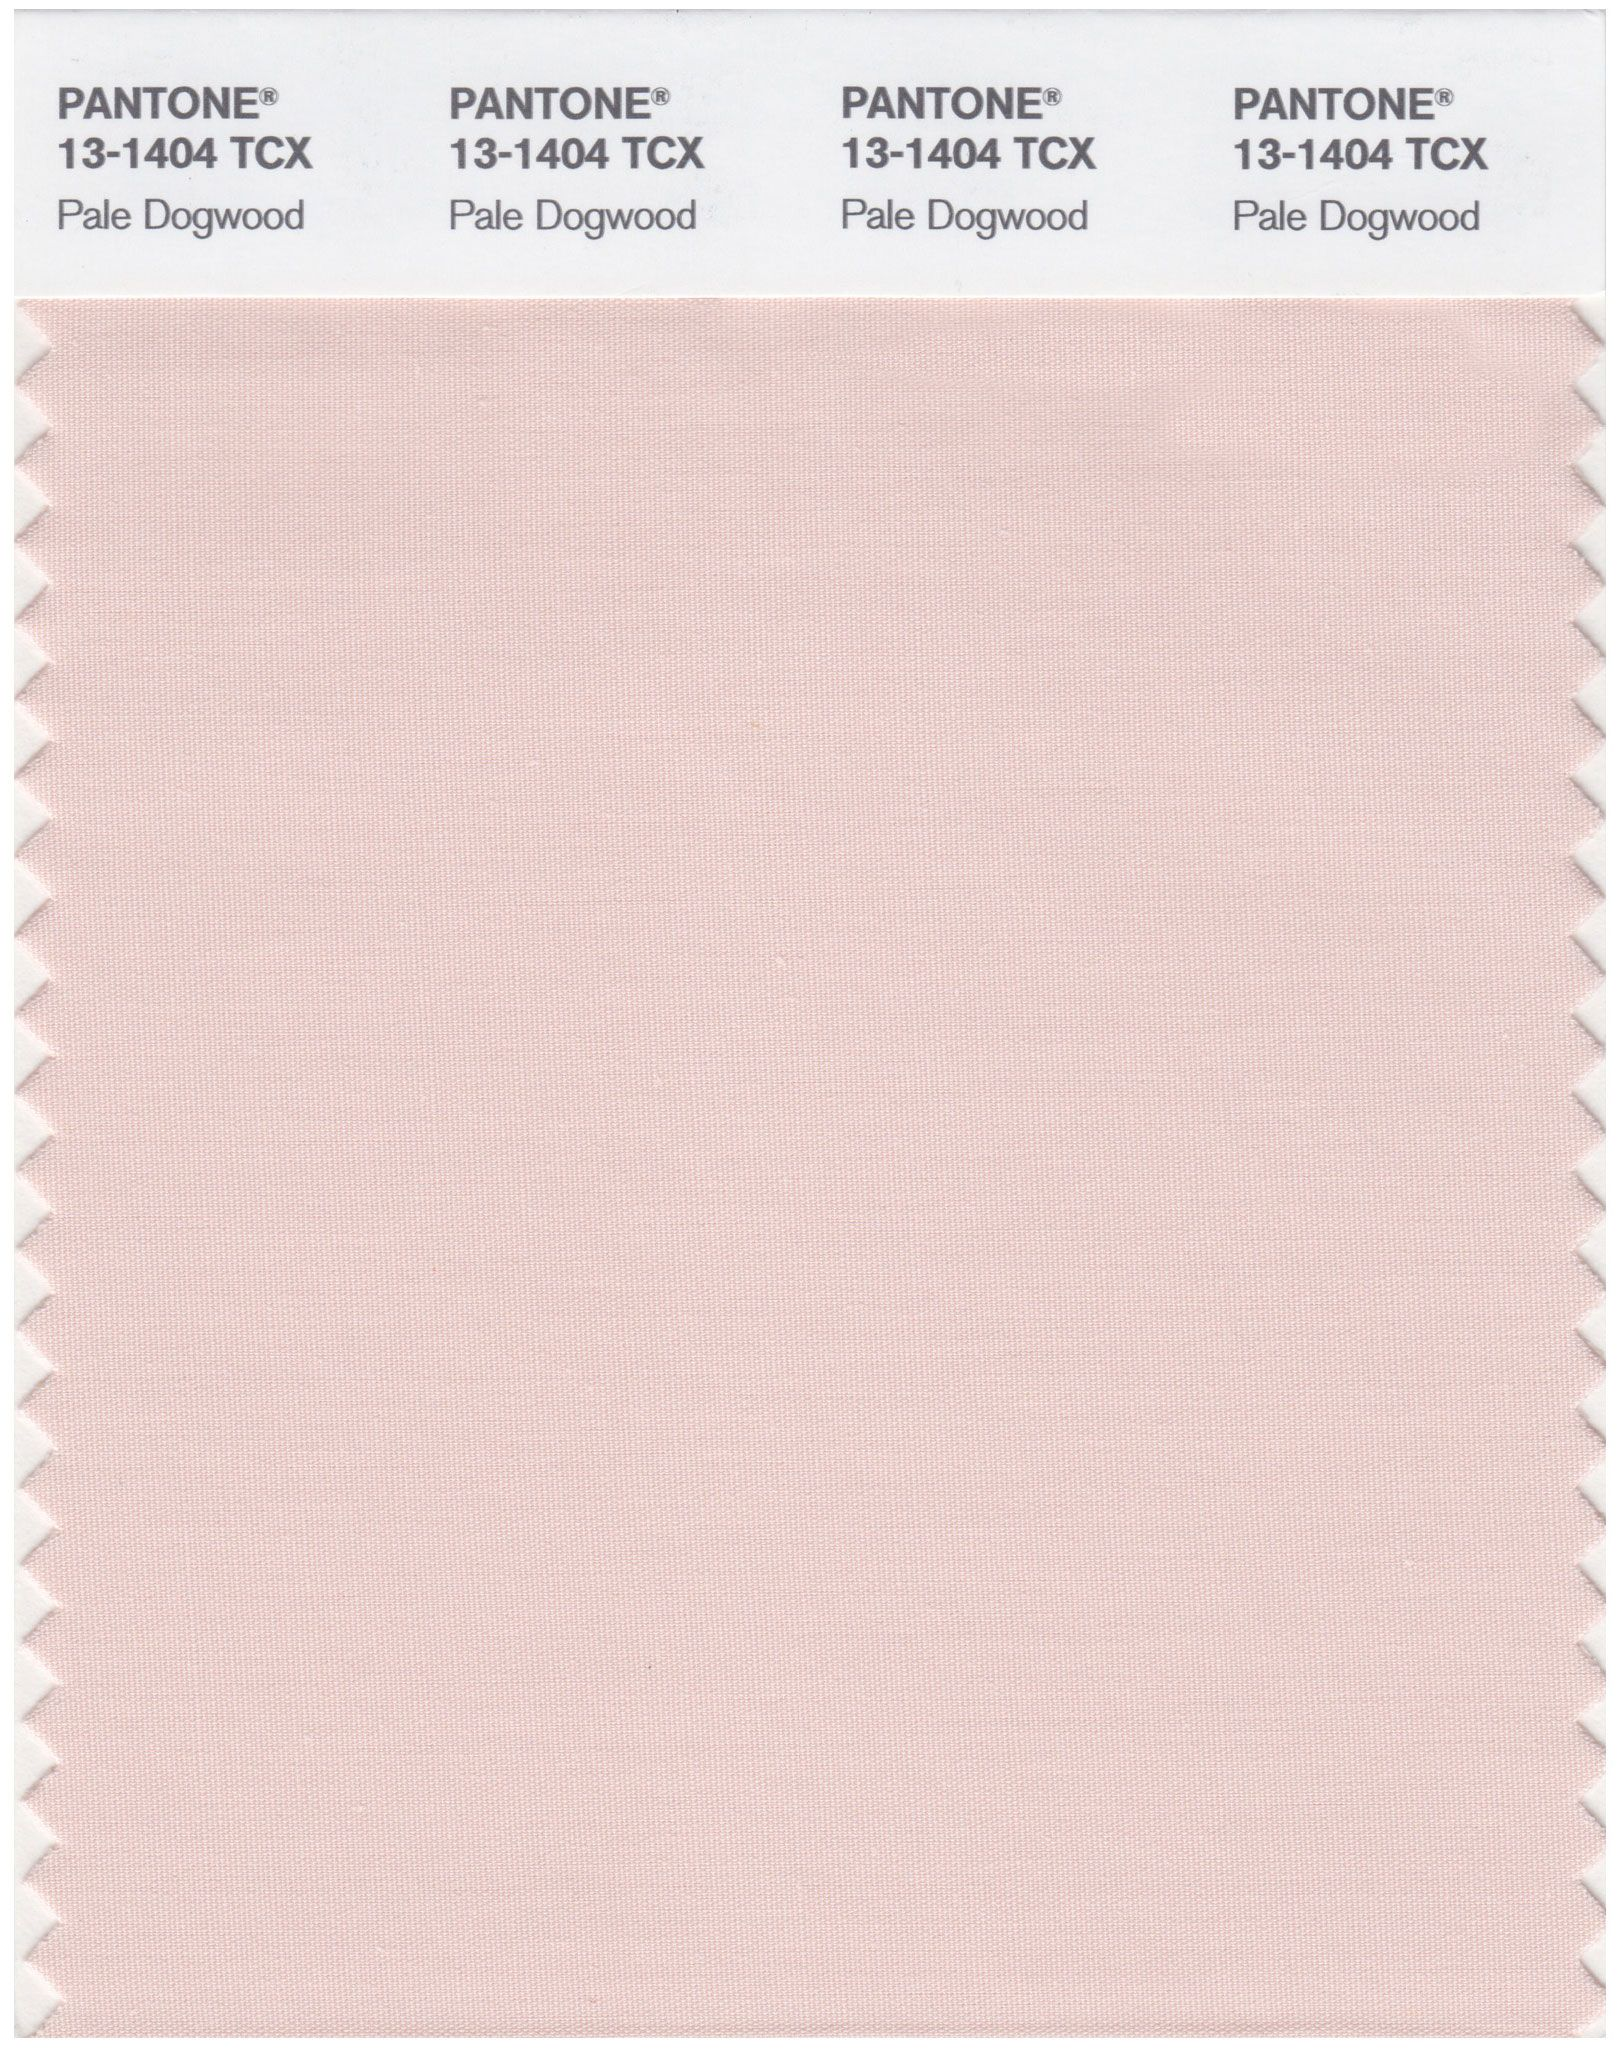 Match For Light Pink Ribbon A Bit Darker Than Scallop Shell Pantone Smart 13 1404 Tcx Color Swatch Card Pale Dogwood Magazine Cafe Nyc Usa